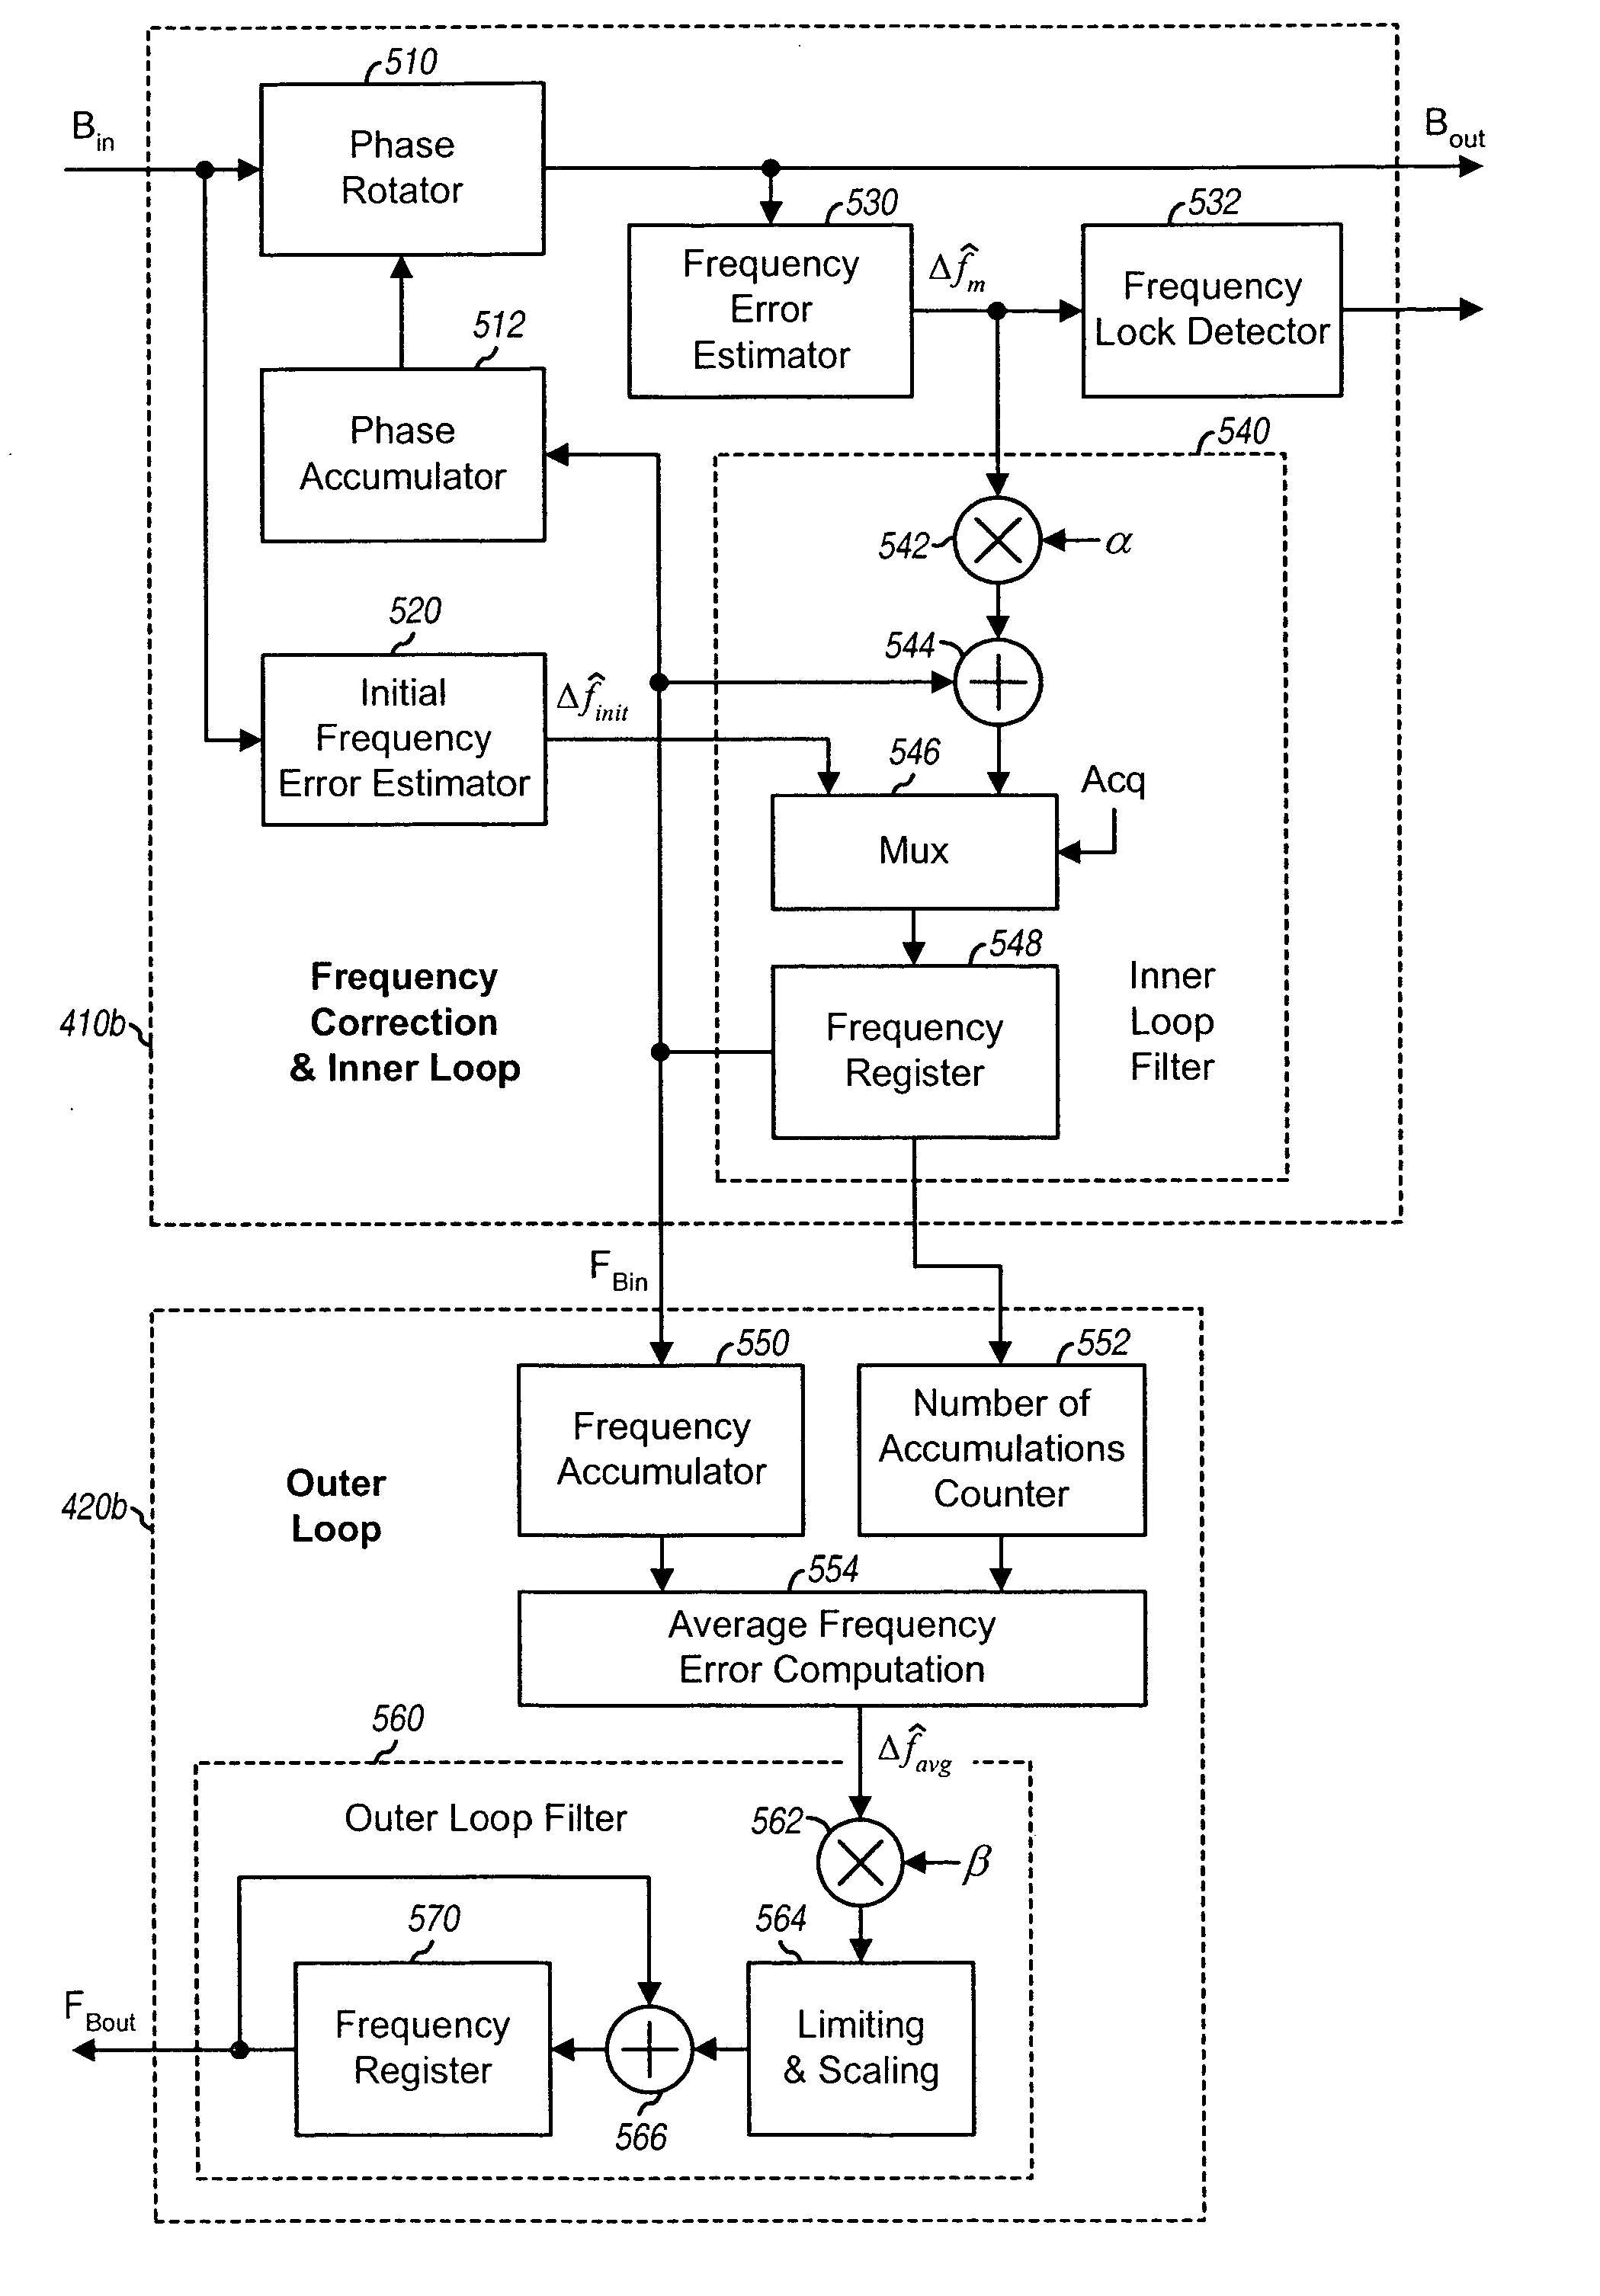 dual-loop automatic frequency control for wireless communication